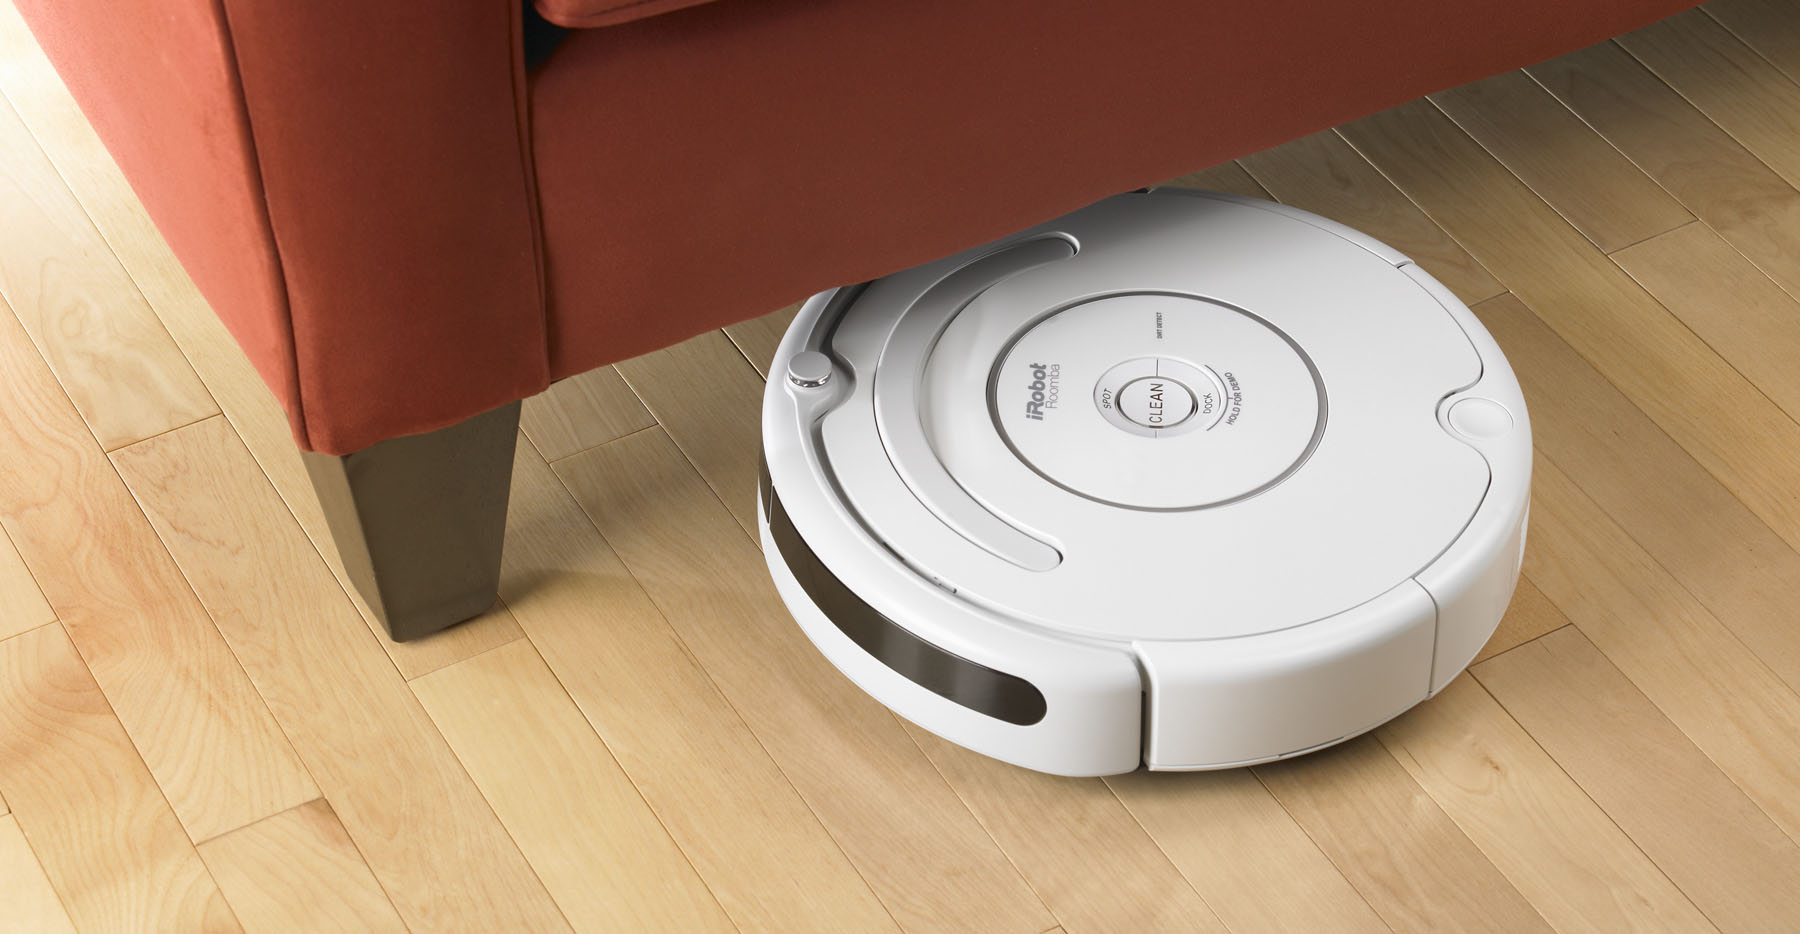 2. iRobot Roomba Vacuum Cleaning Robot